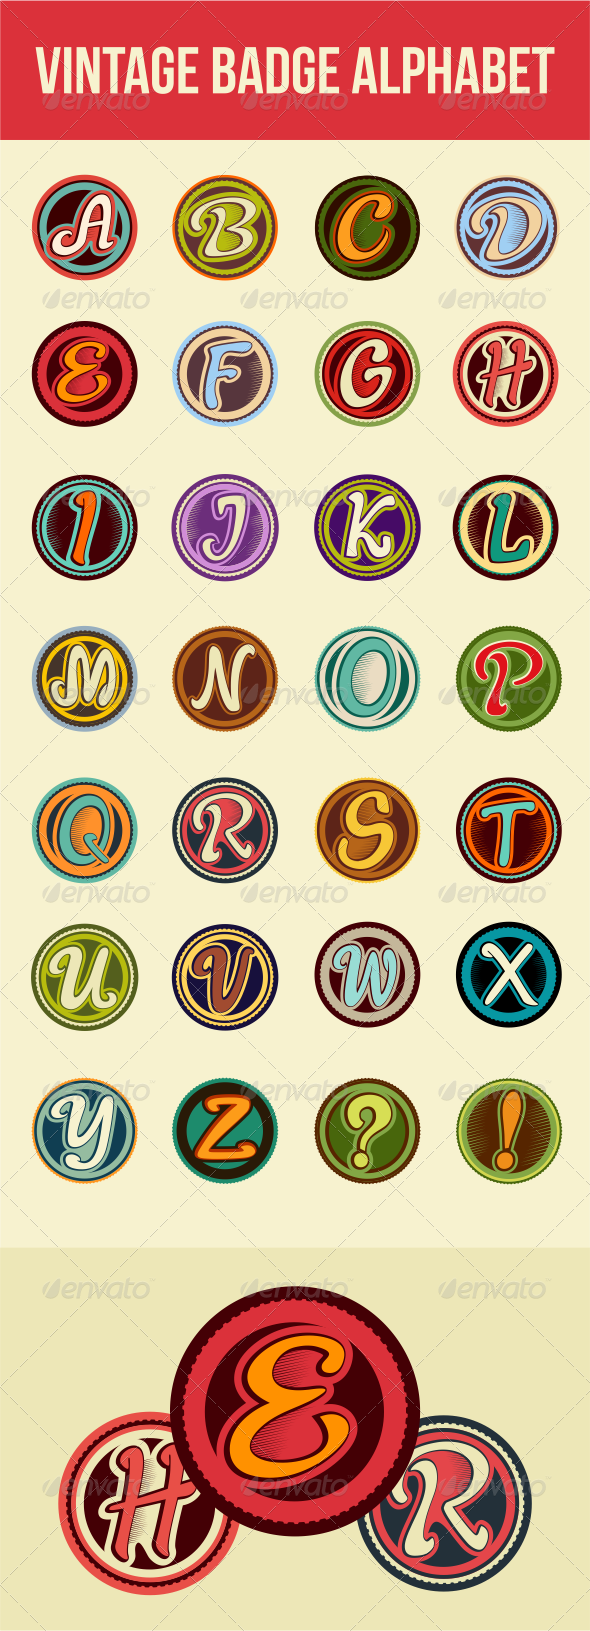 GraphicRiver Vintage Badge Alphabet 6656538